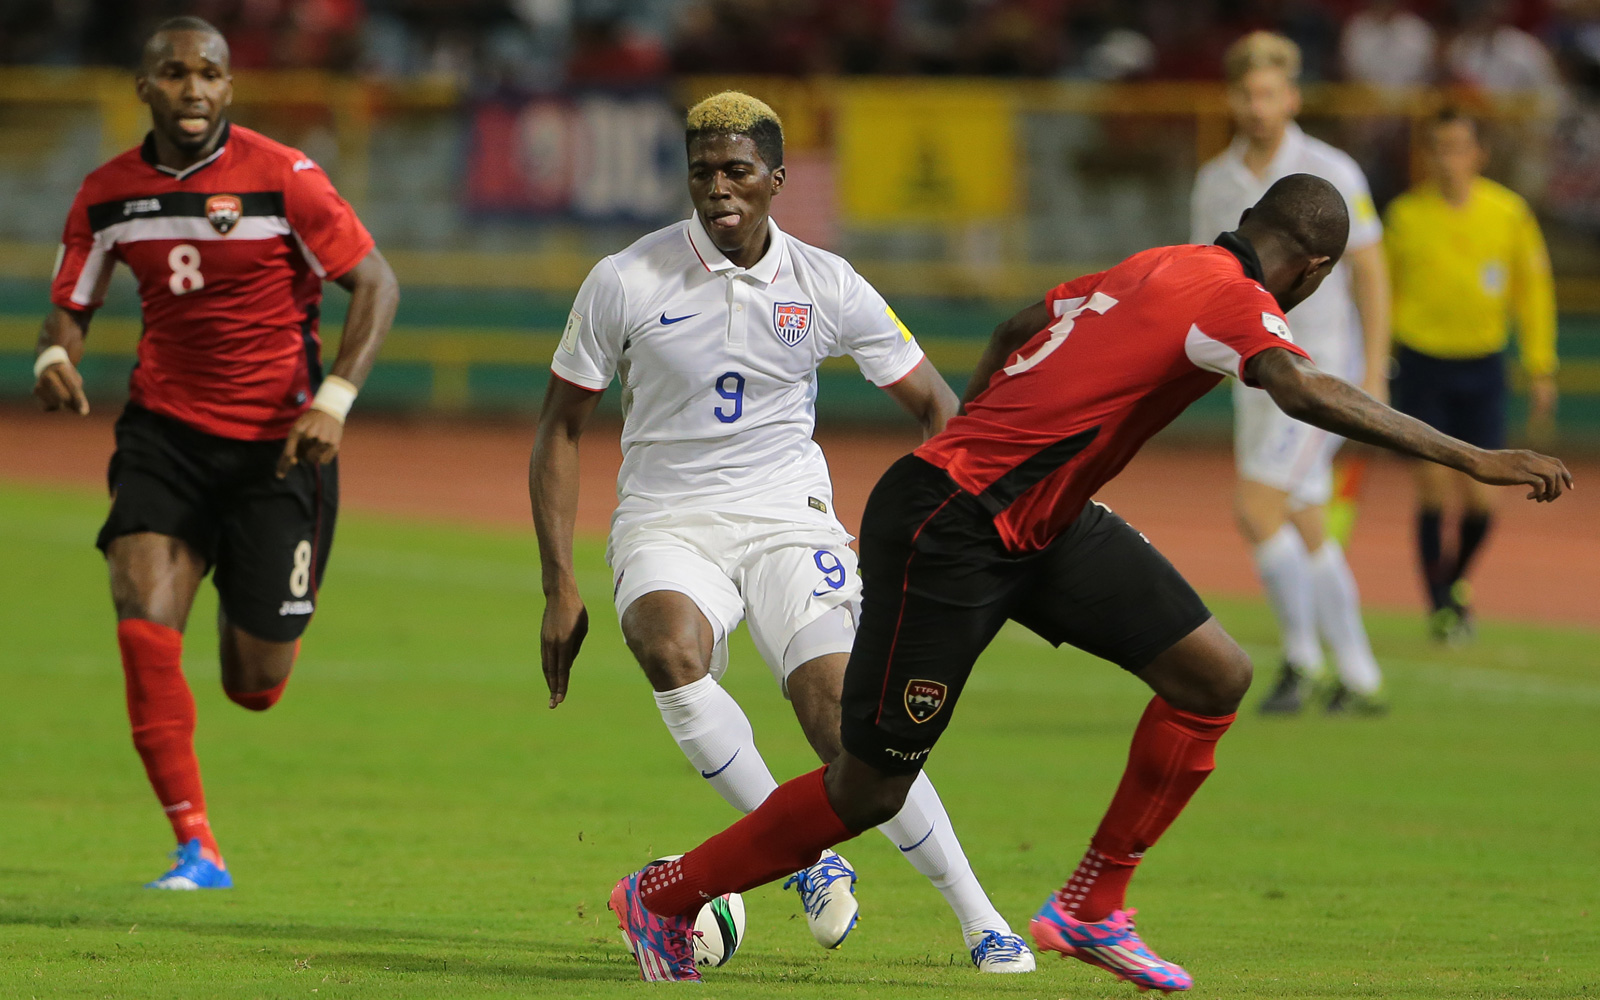 Gyasi Zardes and the U.S. men were held to a 0-0 draw by Trinidad and Tobago in Port of Spain, closing the year with a World Cup qualifying and sitting atop Group C in the semifinal round via goal differential tiebreaker.